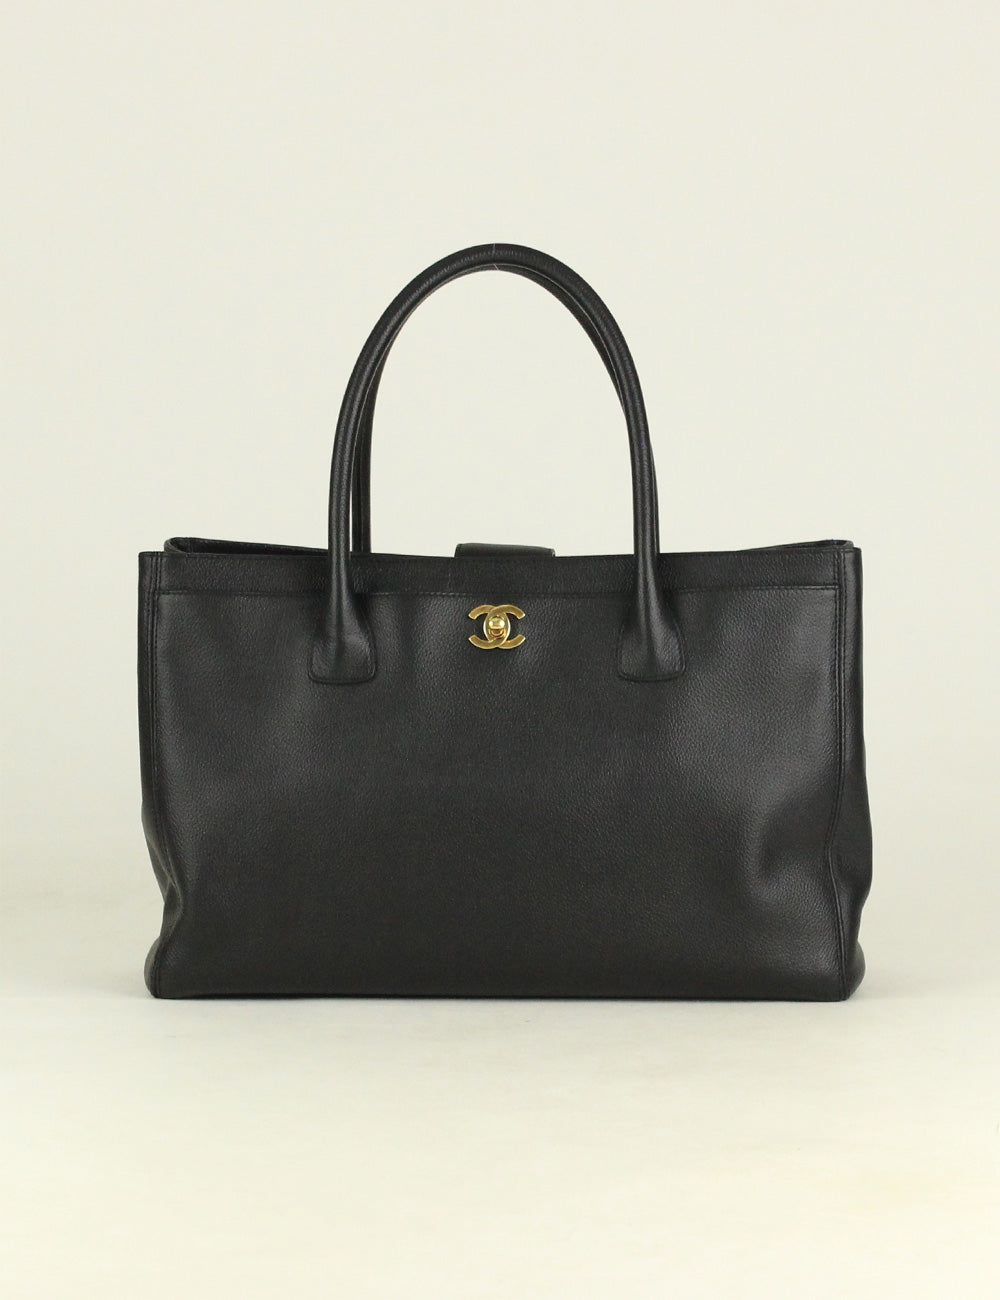 Chanel <br> Executive Tote Bag